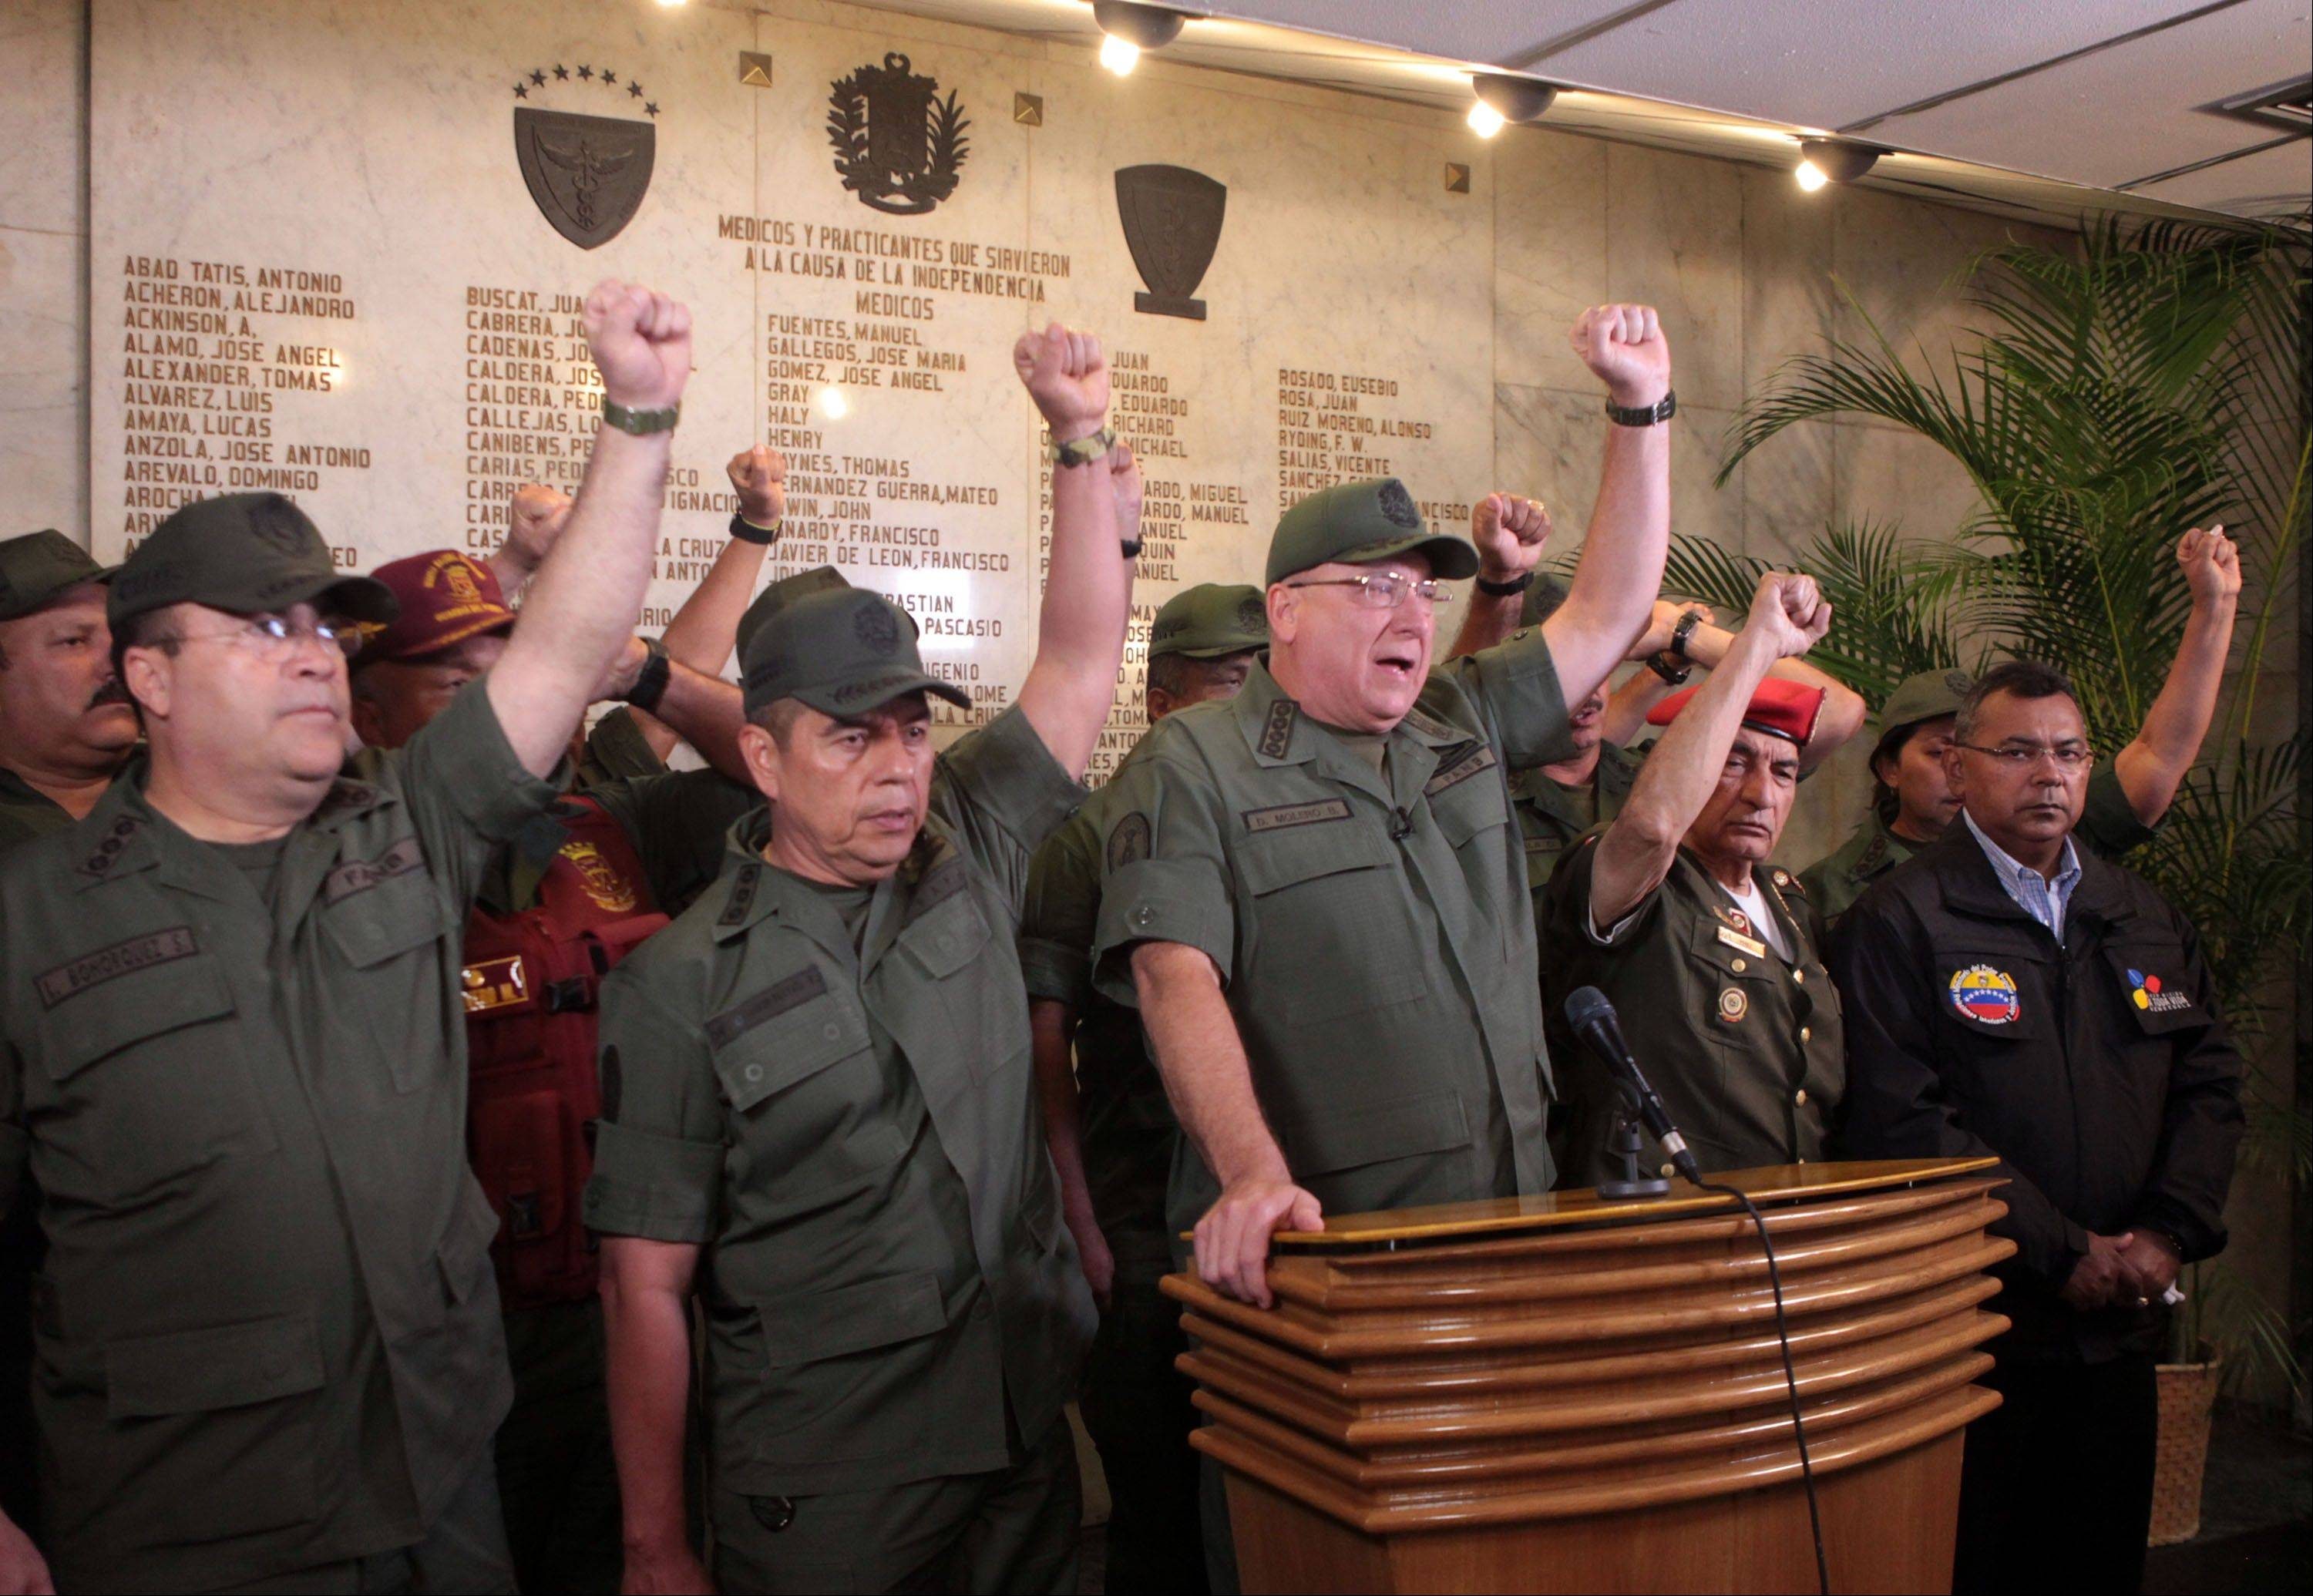 In this photo released by Miraflores Presidential Press Office, Venezuela's Defense Minister Admiral Diego Molero, at the podium, gestures alongside other military leaders during a live televised message to the nation after the vice president announced the death of President Hugo Chavez in Caracas, Venezuela.